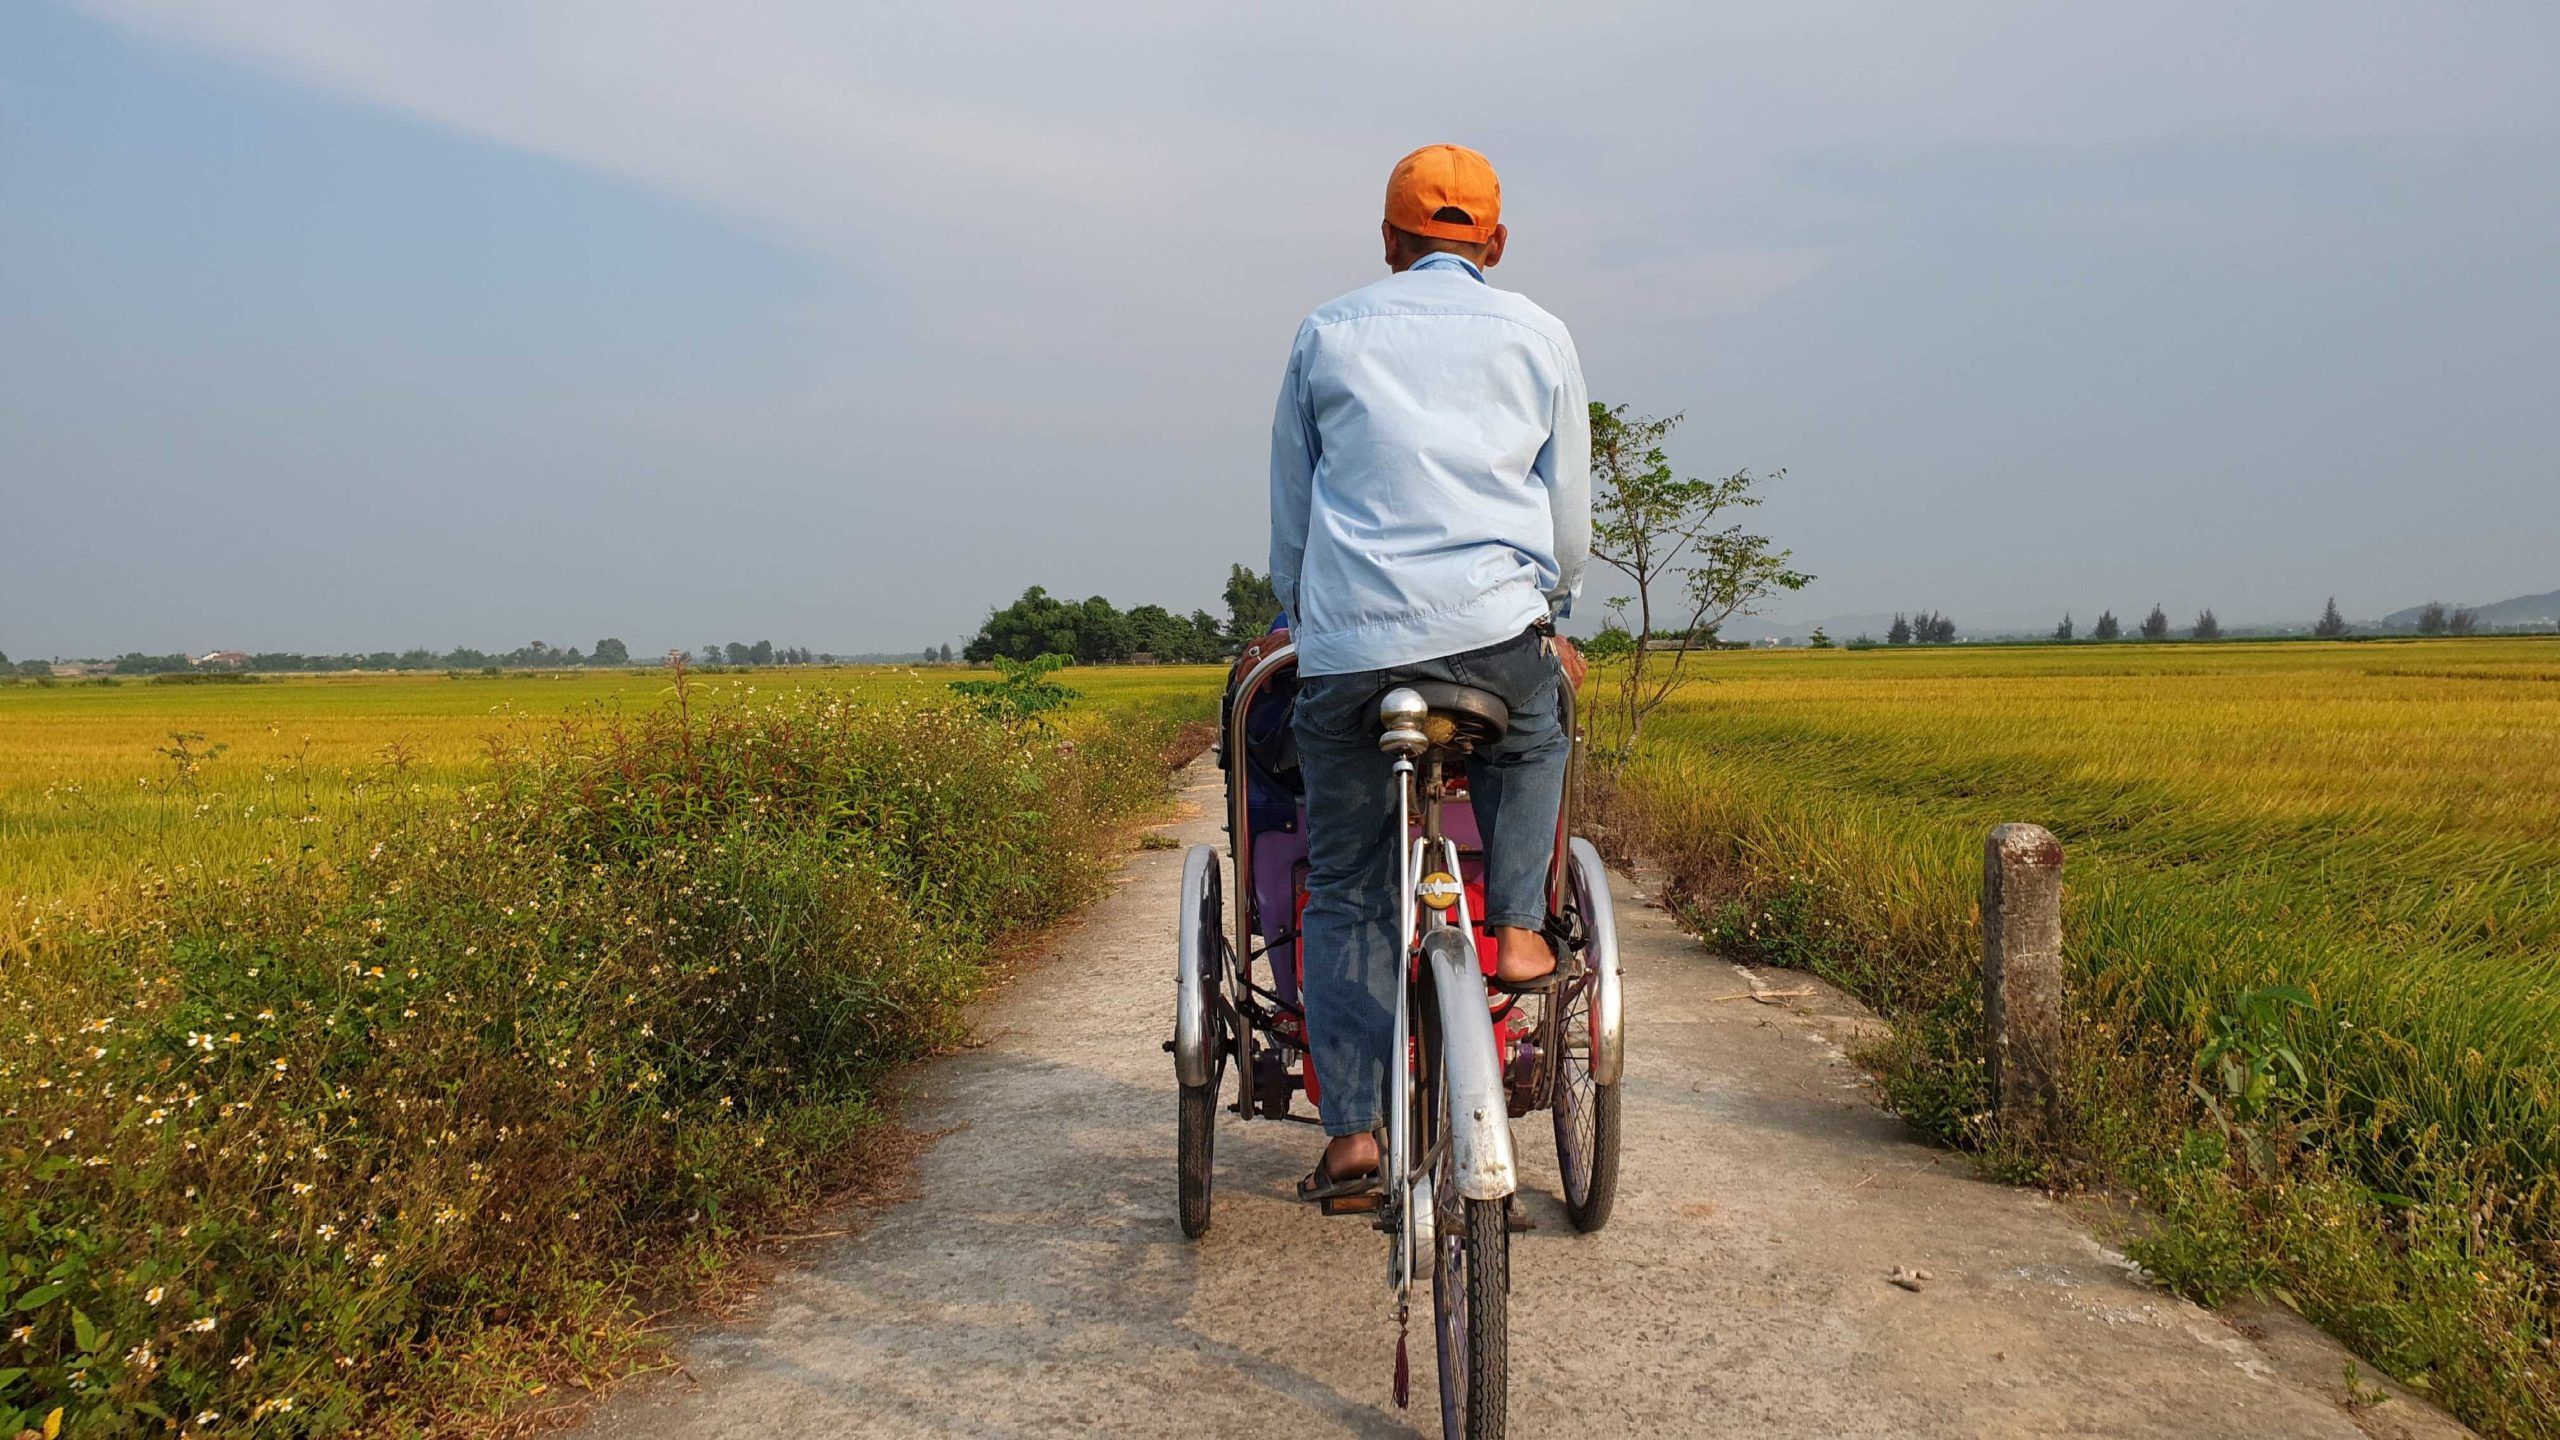 Take a ride through the ricefields on a rickshaw in Vietnam